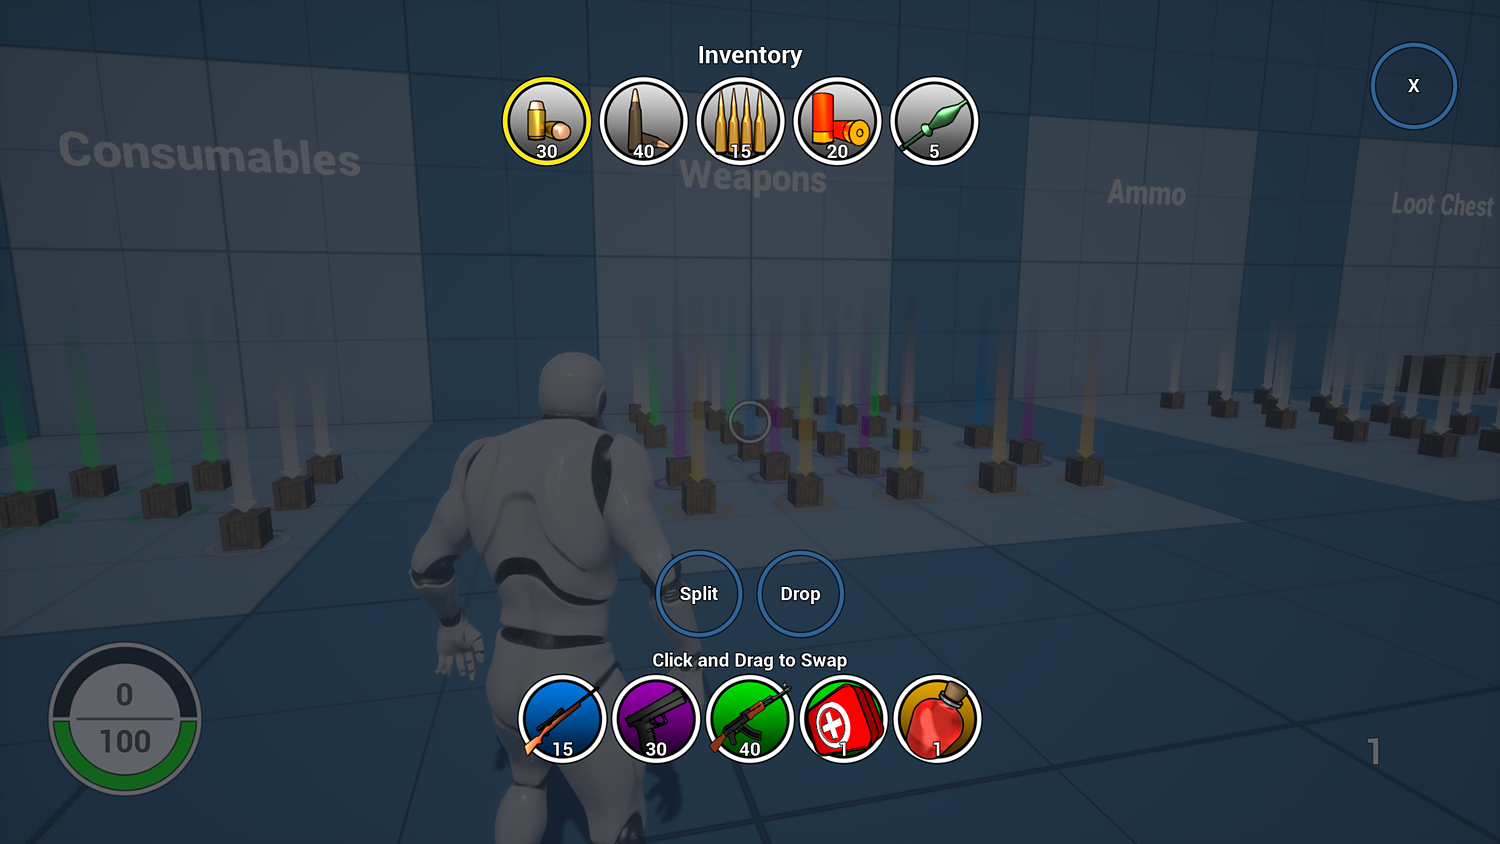 UE4] Inventory for Battle Royale